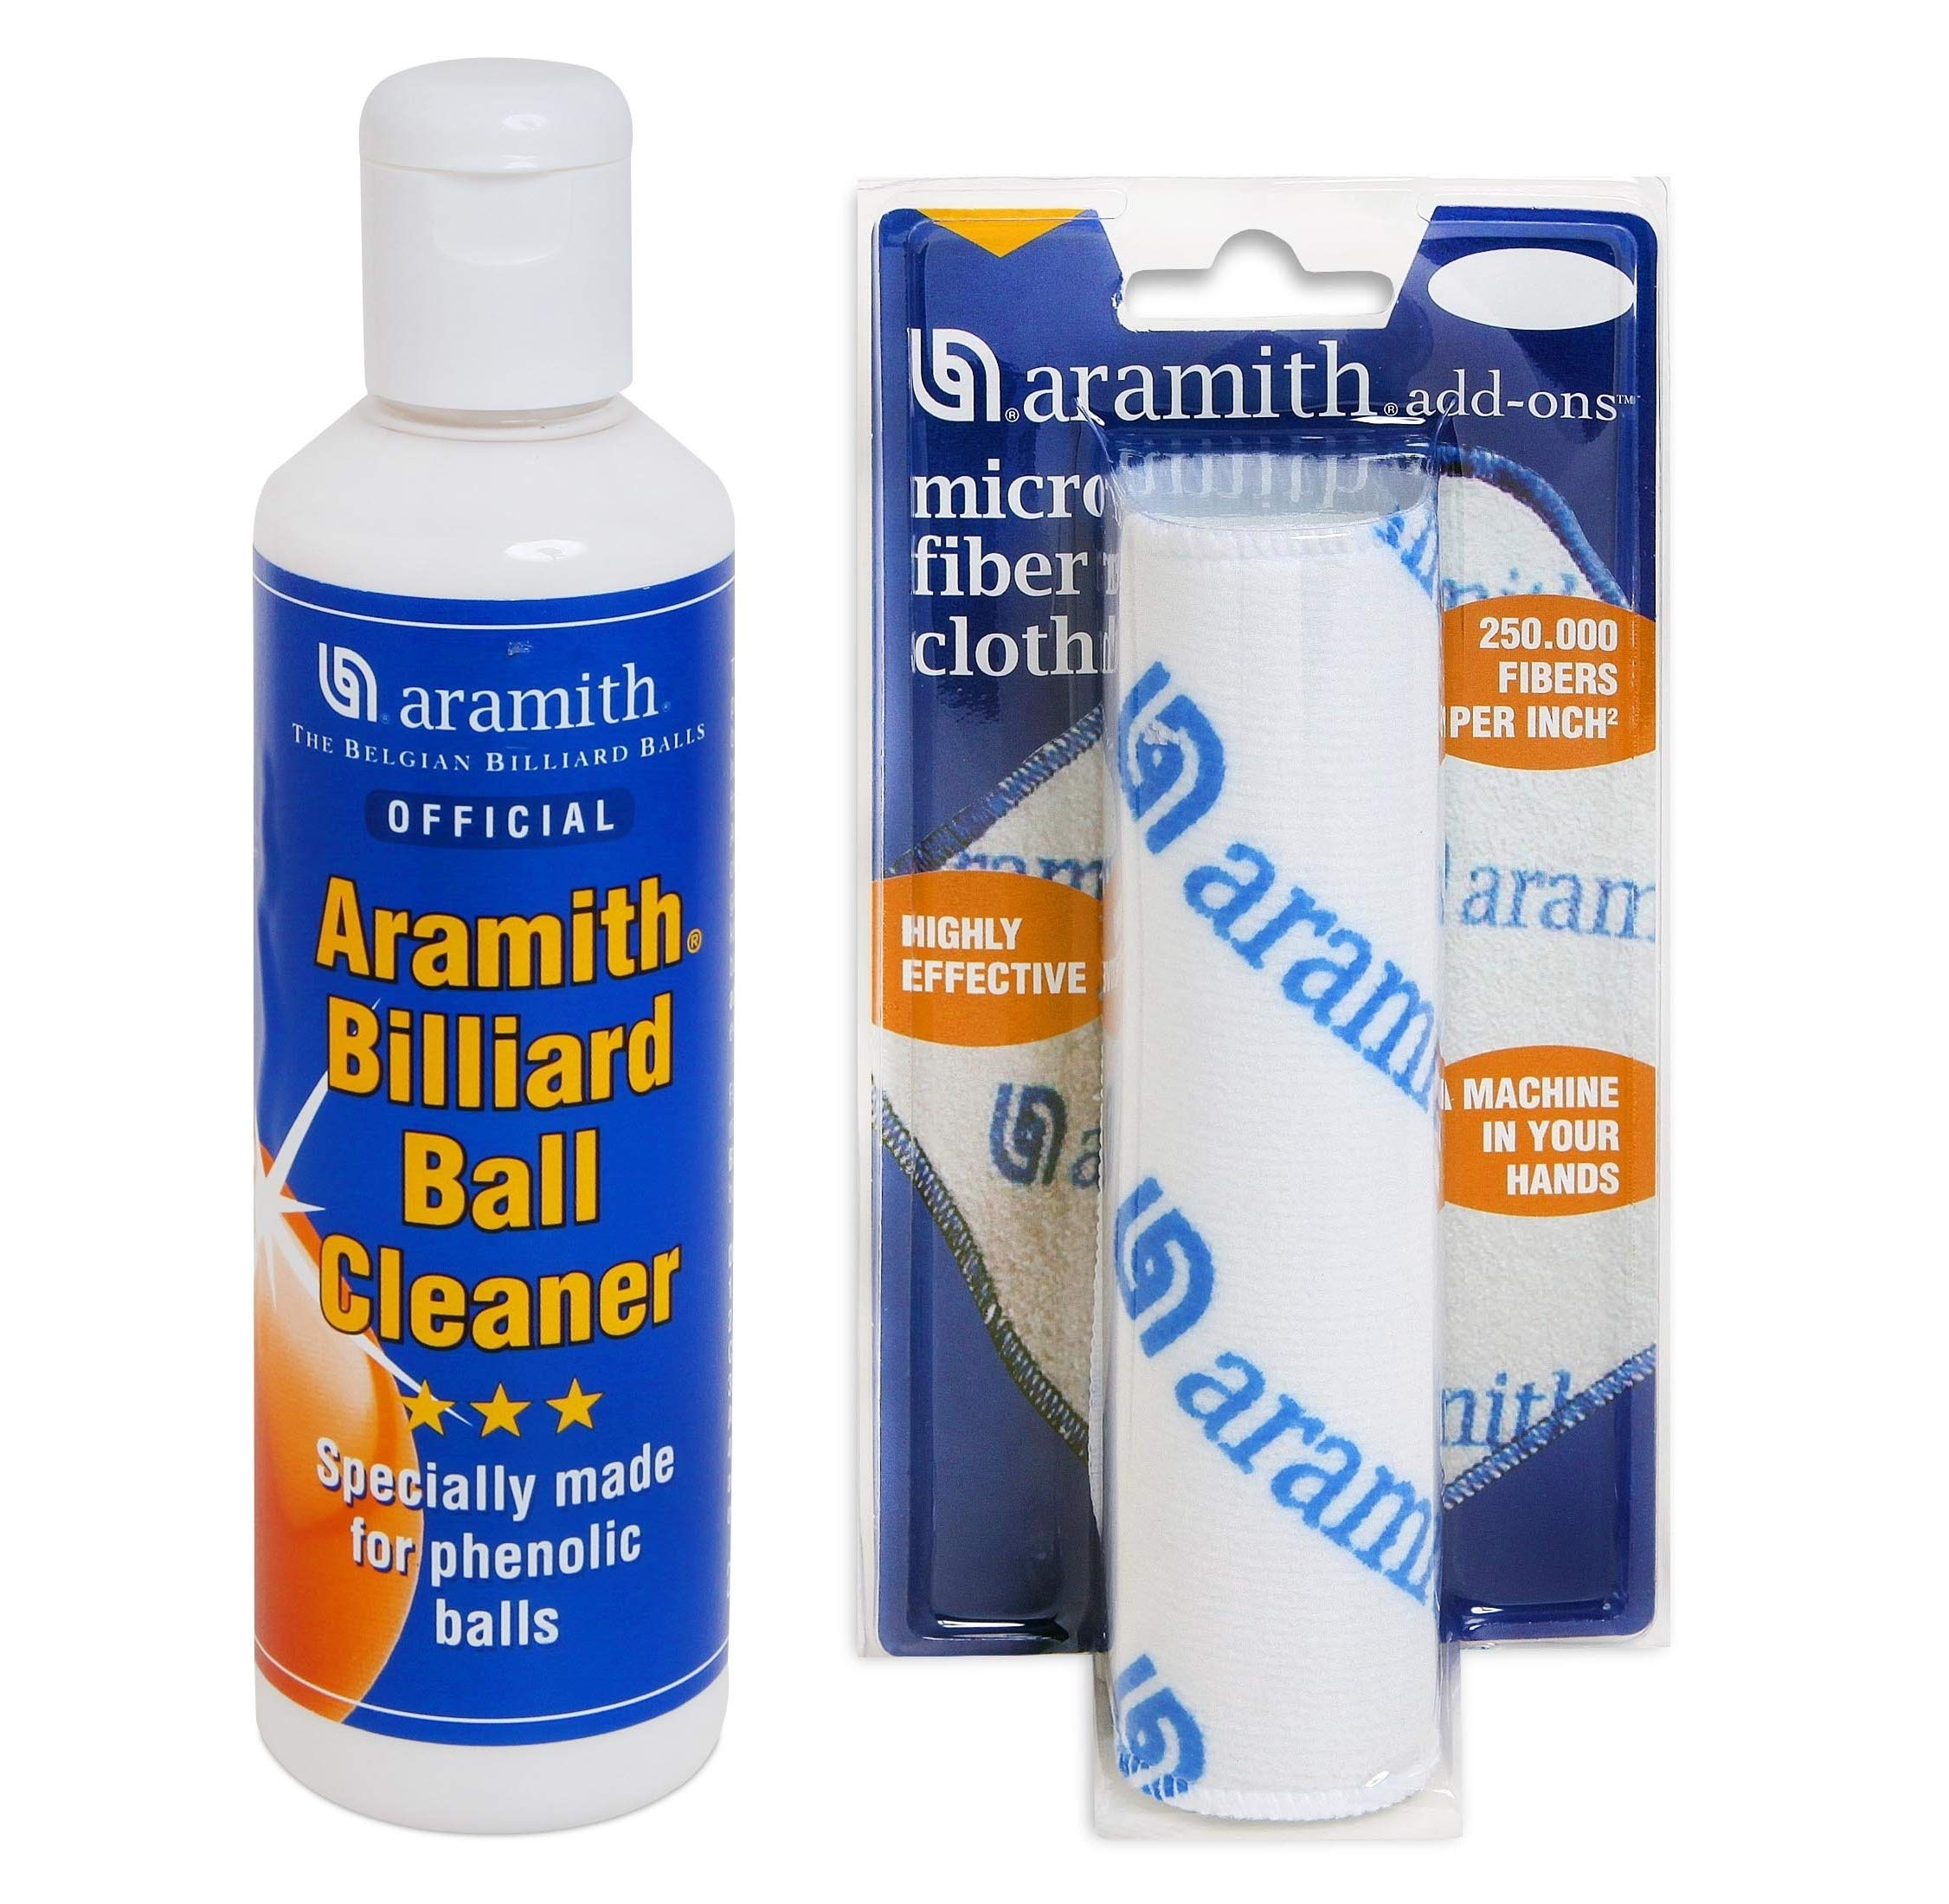 Aramith Phenolic Billiard Ball Care Cue Ball Cleaner and Restorer for Cleaning Restoring Polishing and Caring for Pool Balls (Billiard Ball Cleaner and Cloth)